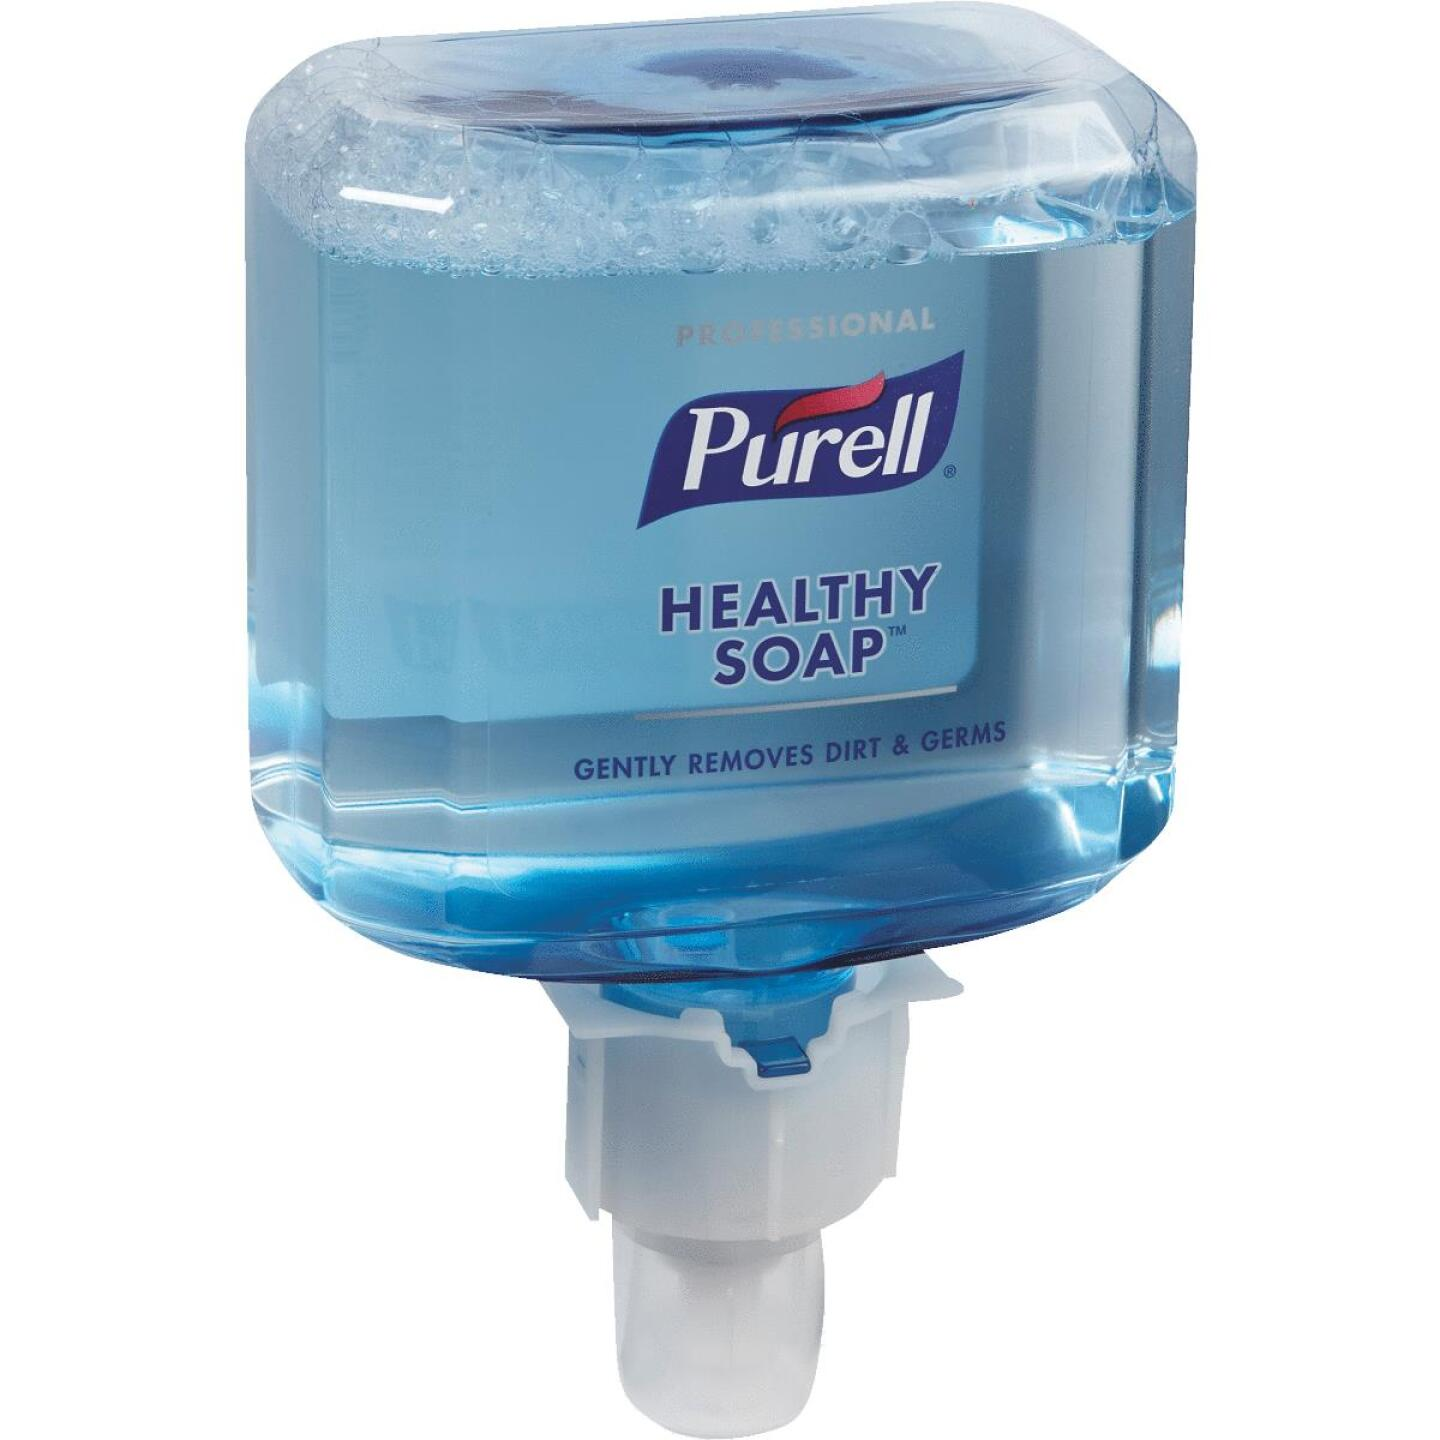 Purell ES4 1200mL Professional Healthy Soap Fresh Scent Foam Refill Image 1